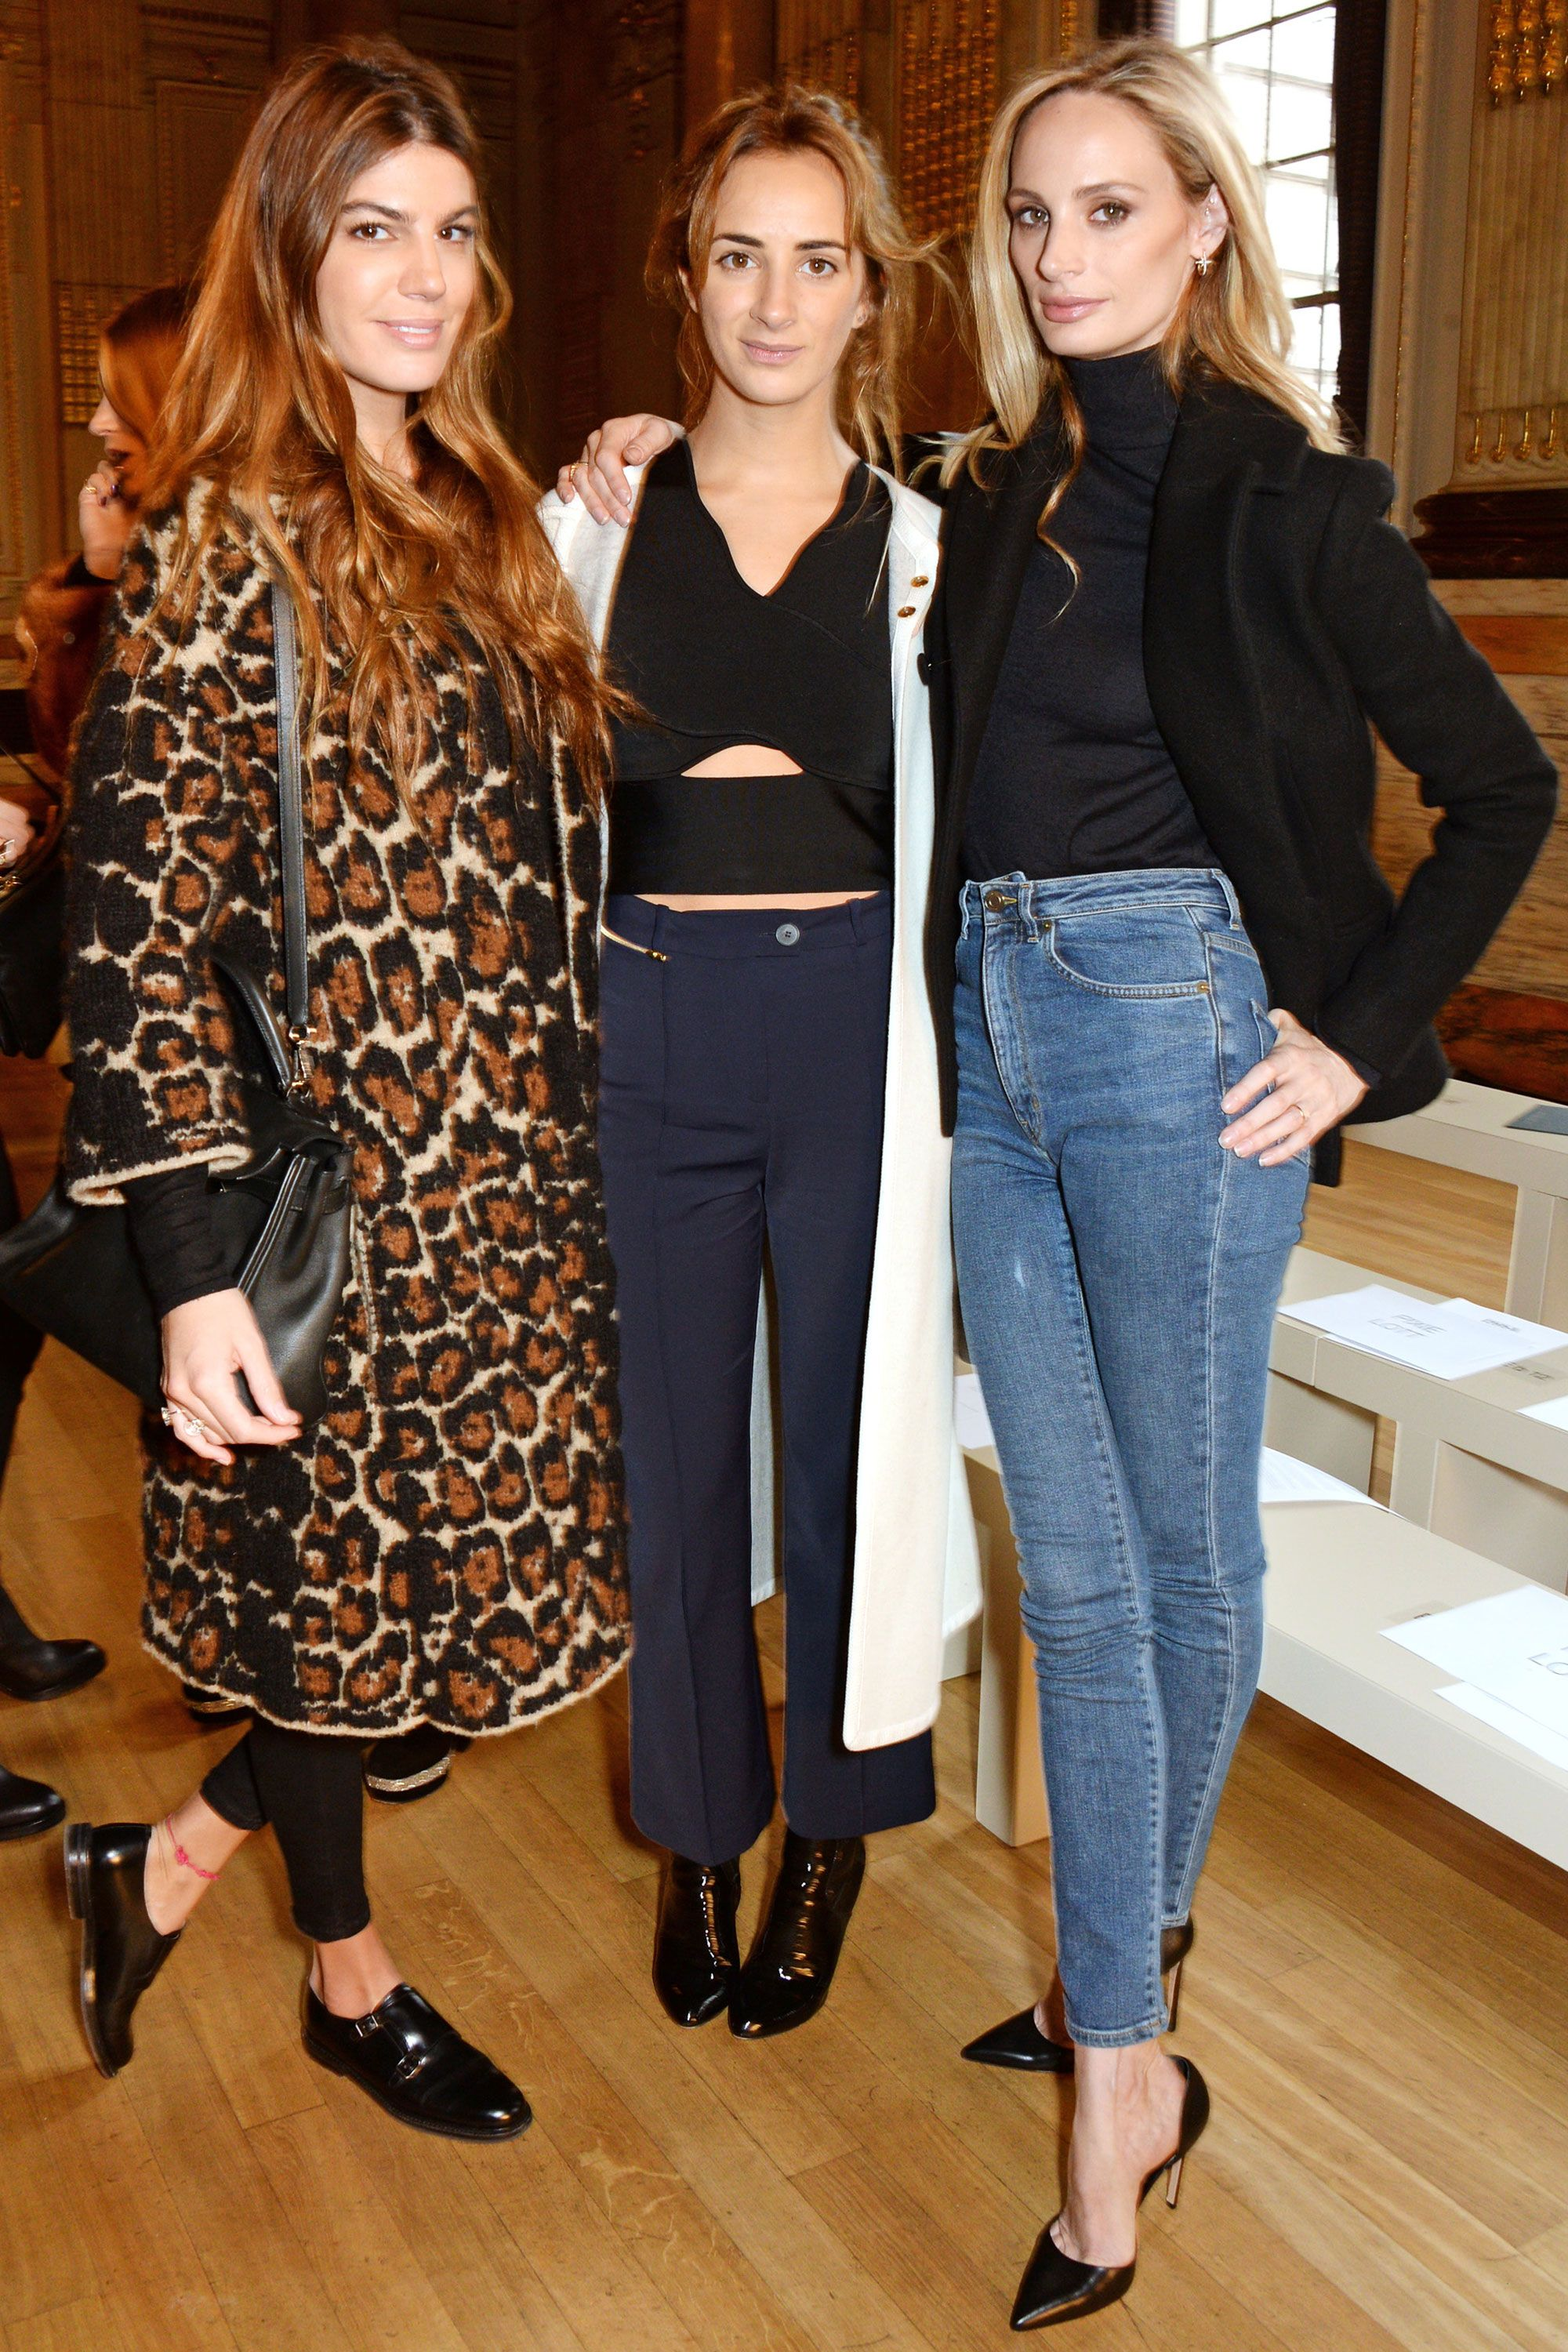 London Fashion Week Party Picutres - London Fashion Week Front Row Style